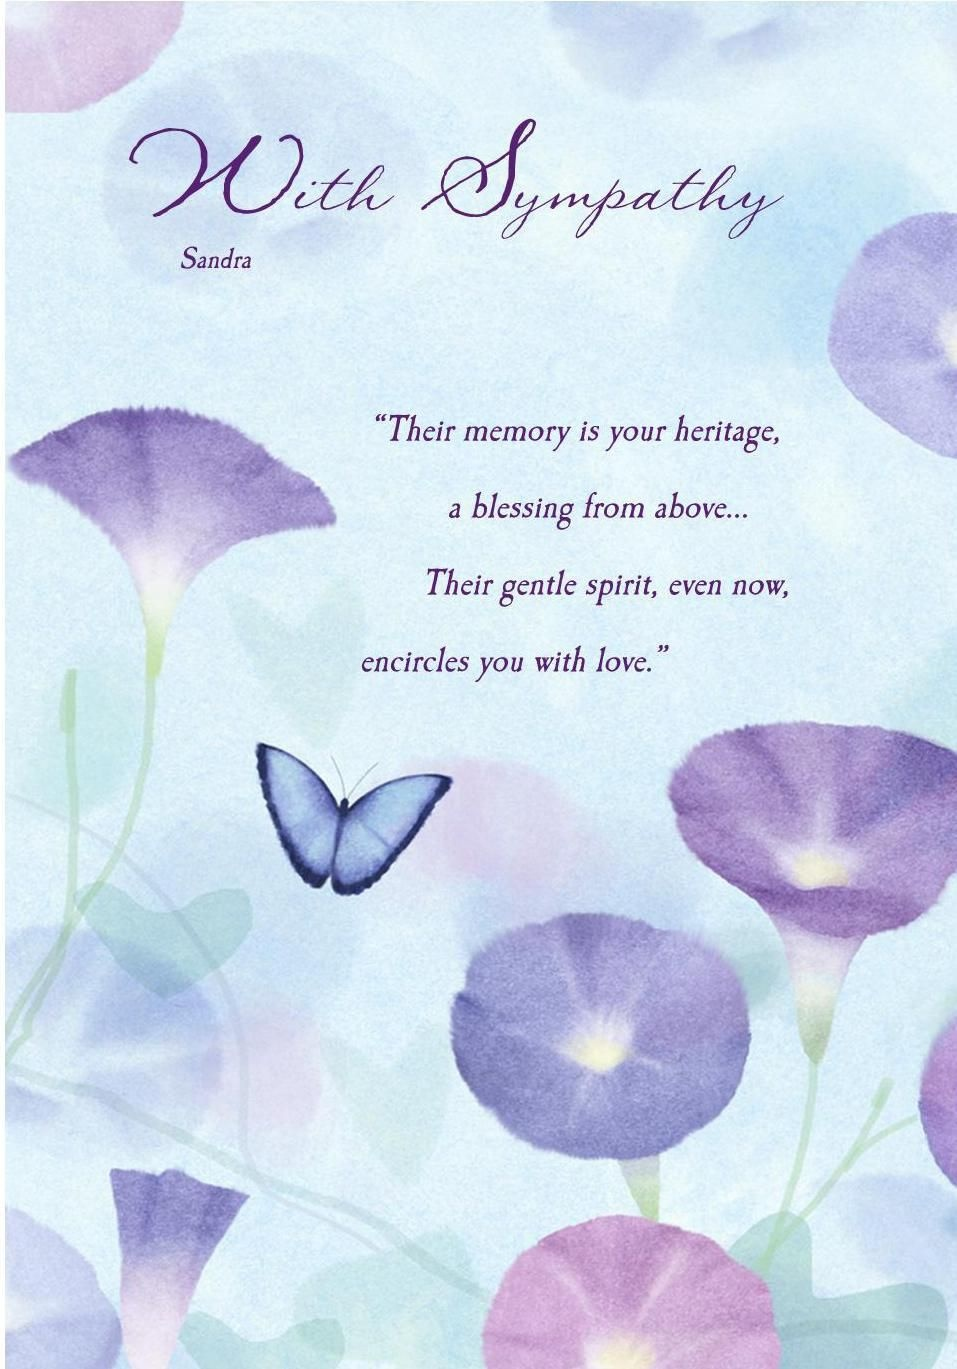 Deepest Sympathy Messages   Sympathy Card Butterfly Sympathy Card - Free Printable Sympathy Verses